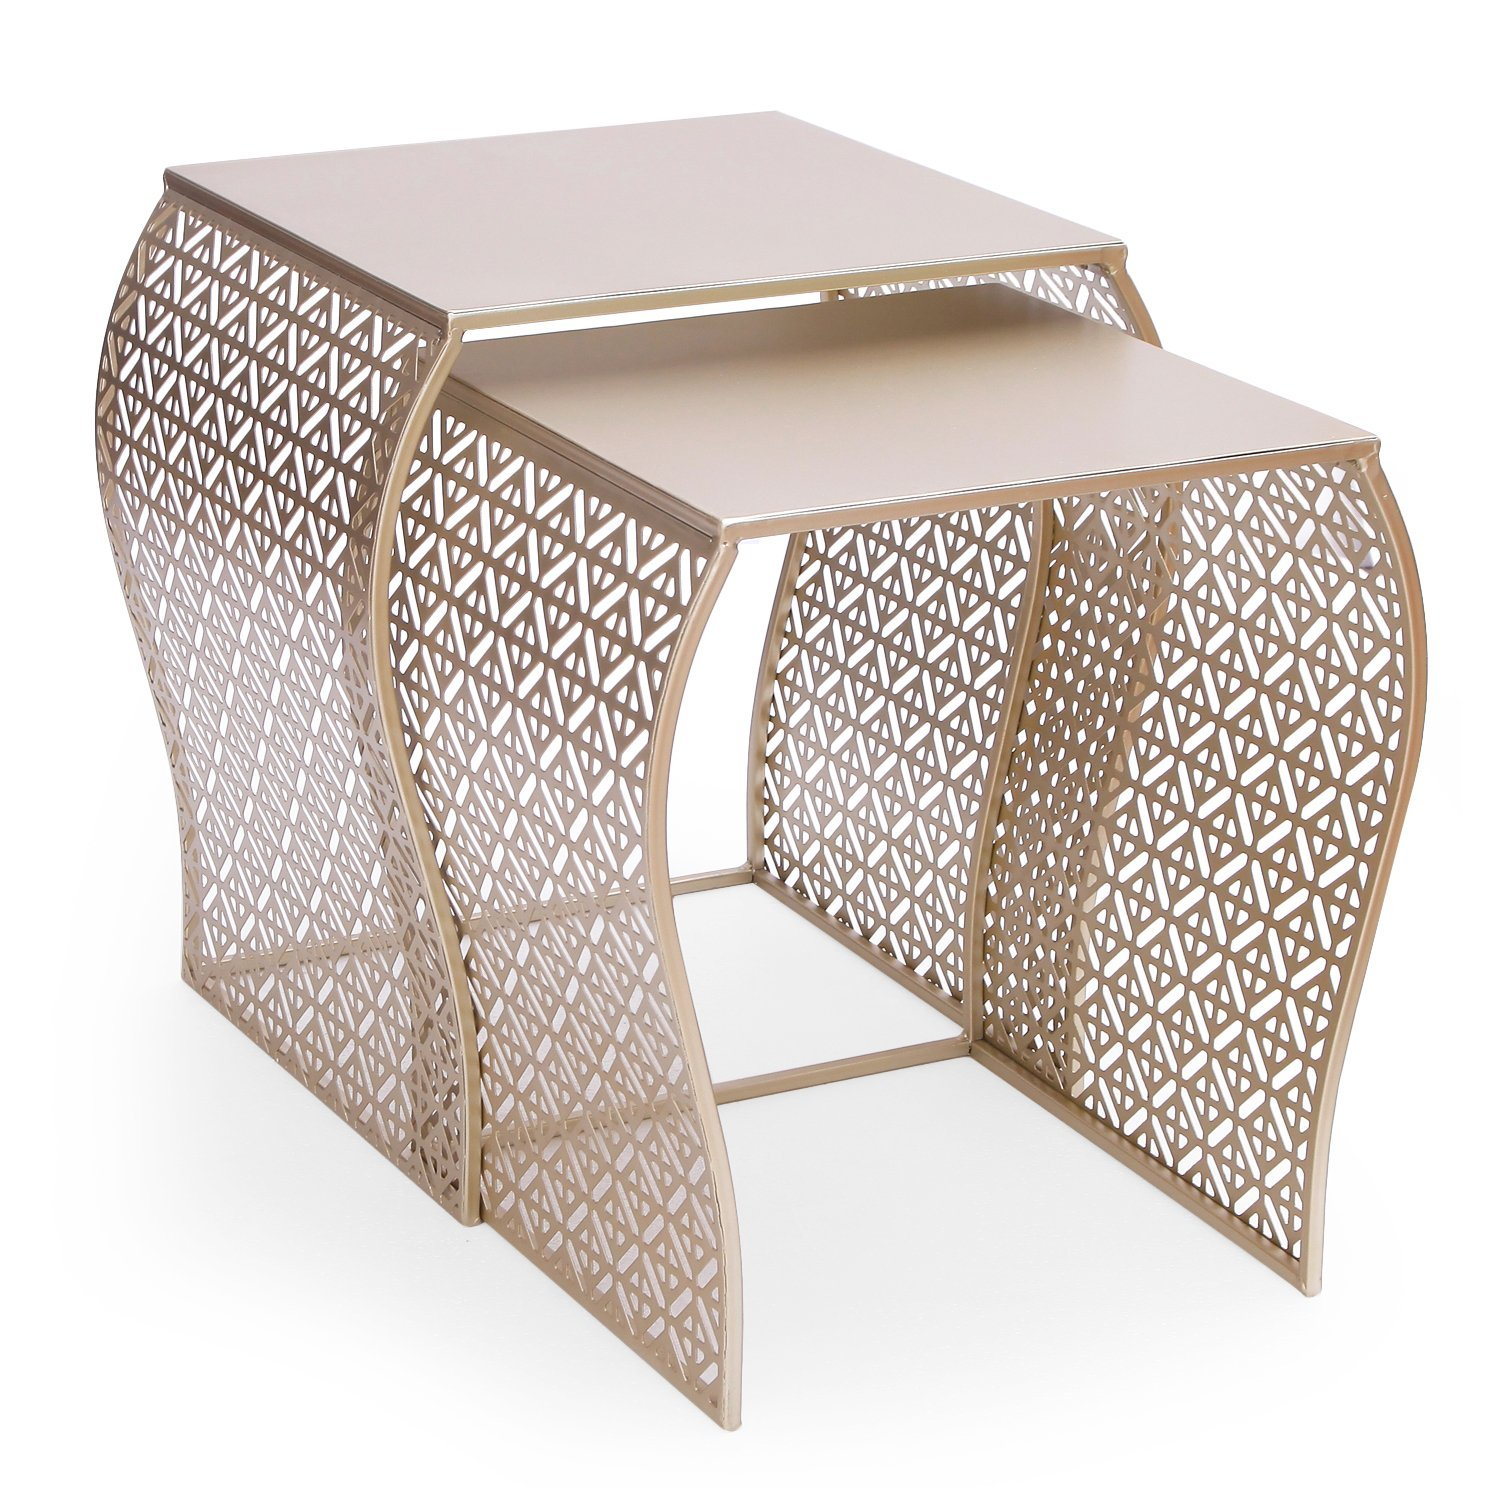 Adeco Luxury Modern Metal Golden Accent Nesting Stackable Side End Table, Set of 2 by Adeco